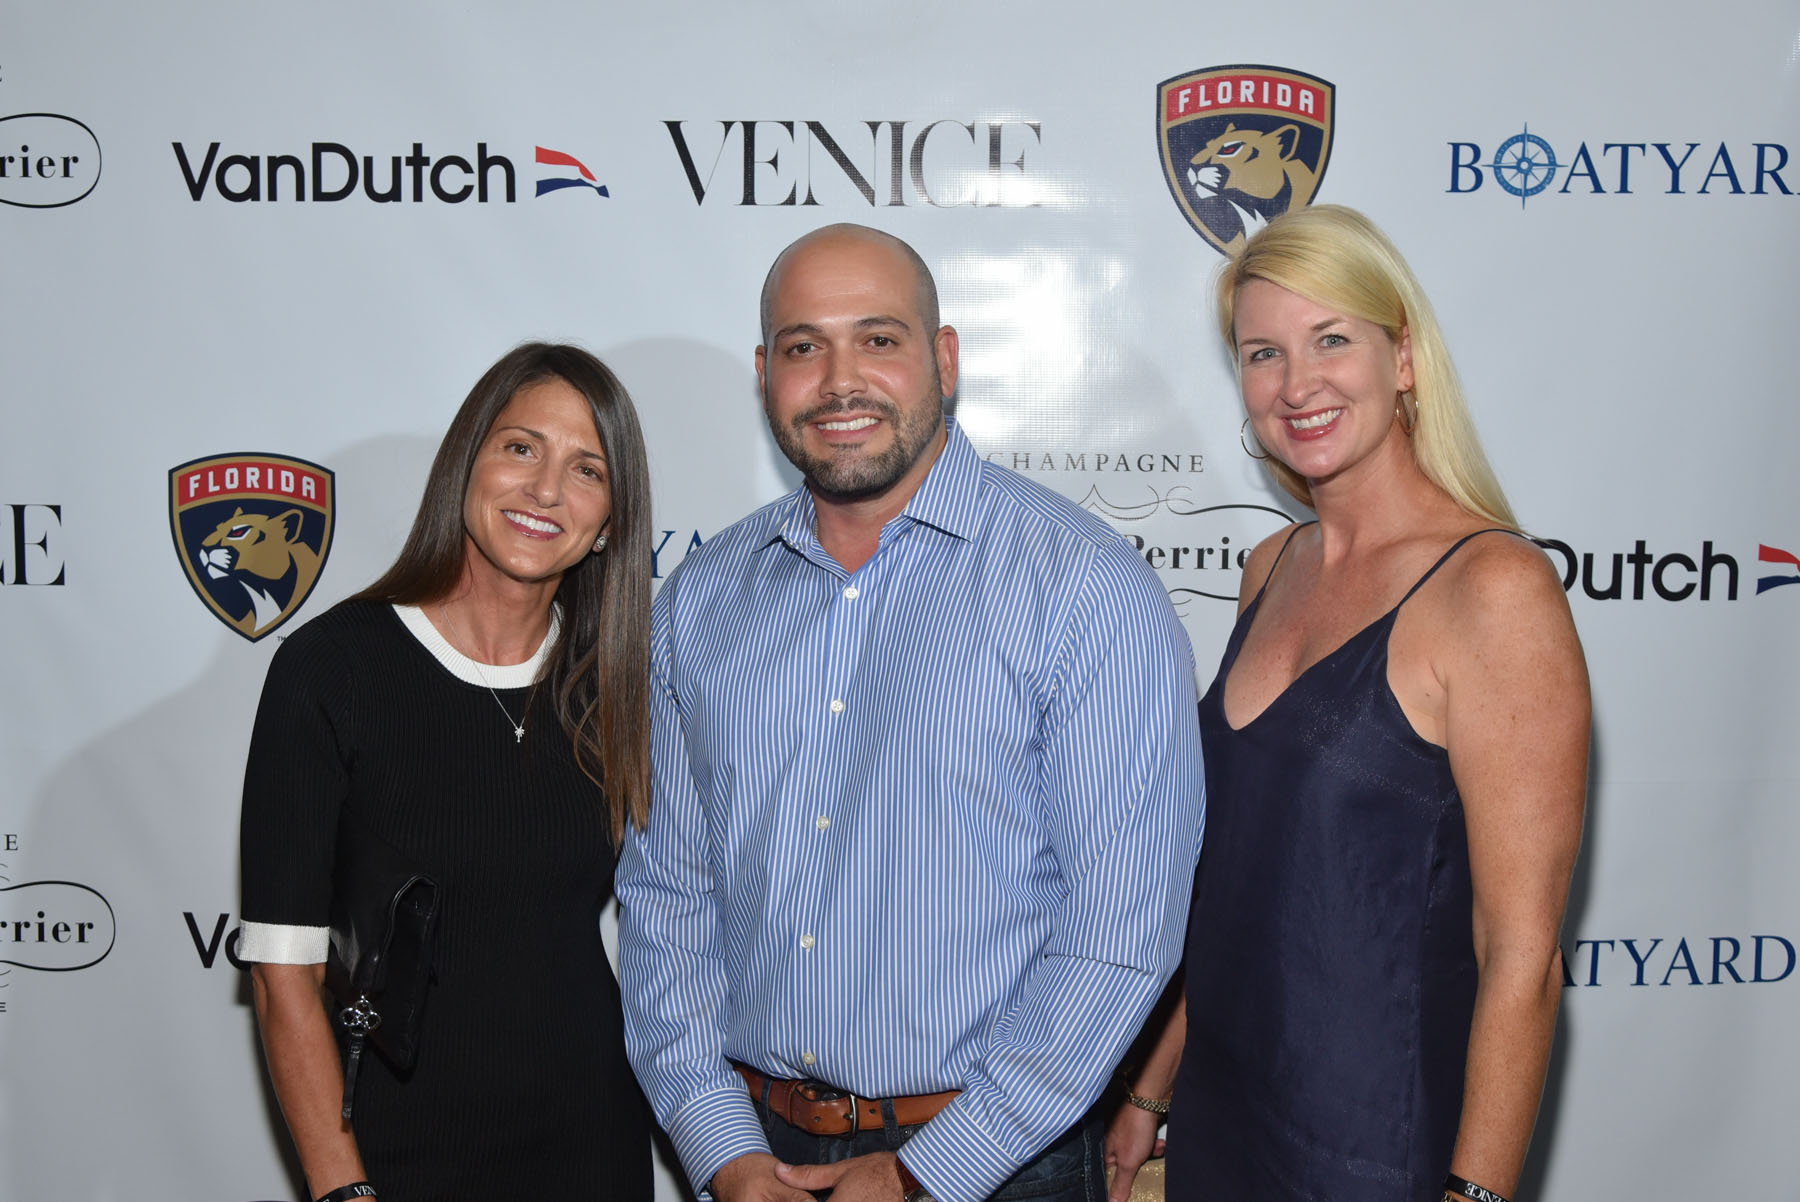 alexis-altman-michael-toroker-maggie-king-City-Cool-Boat-Yard-Fort-Lauderdale-Venice-Magazine